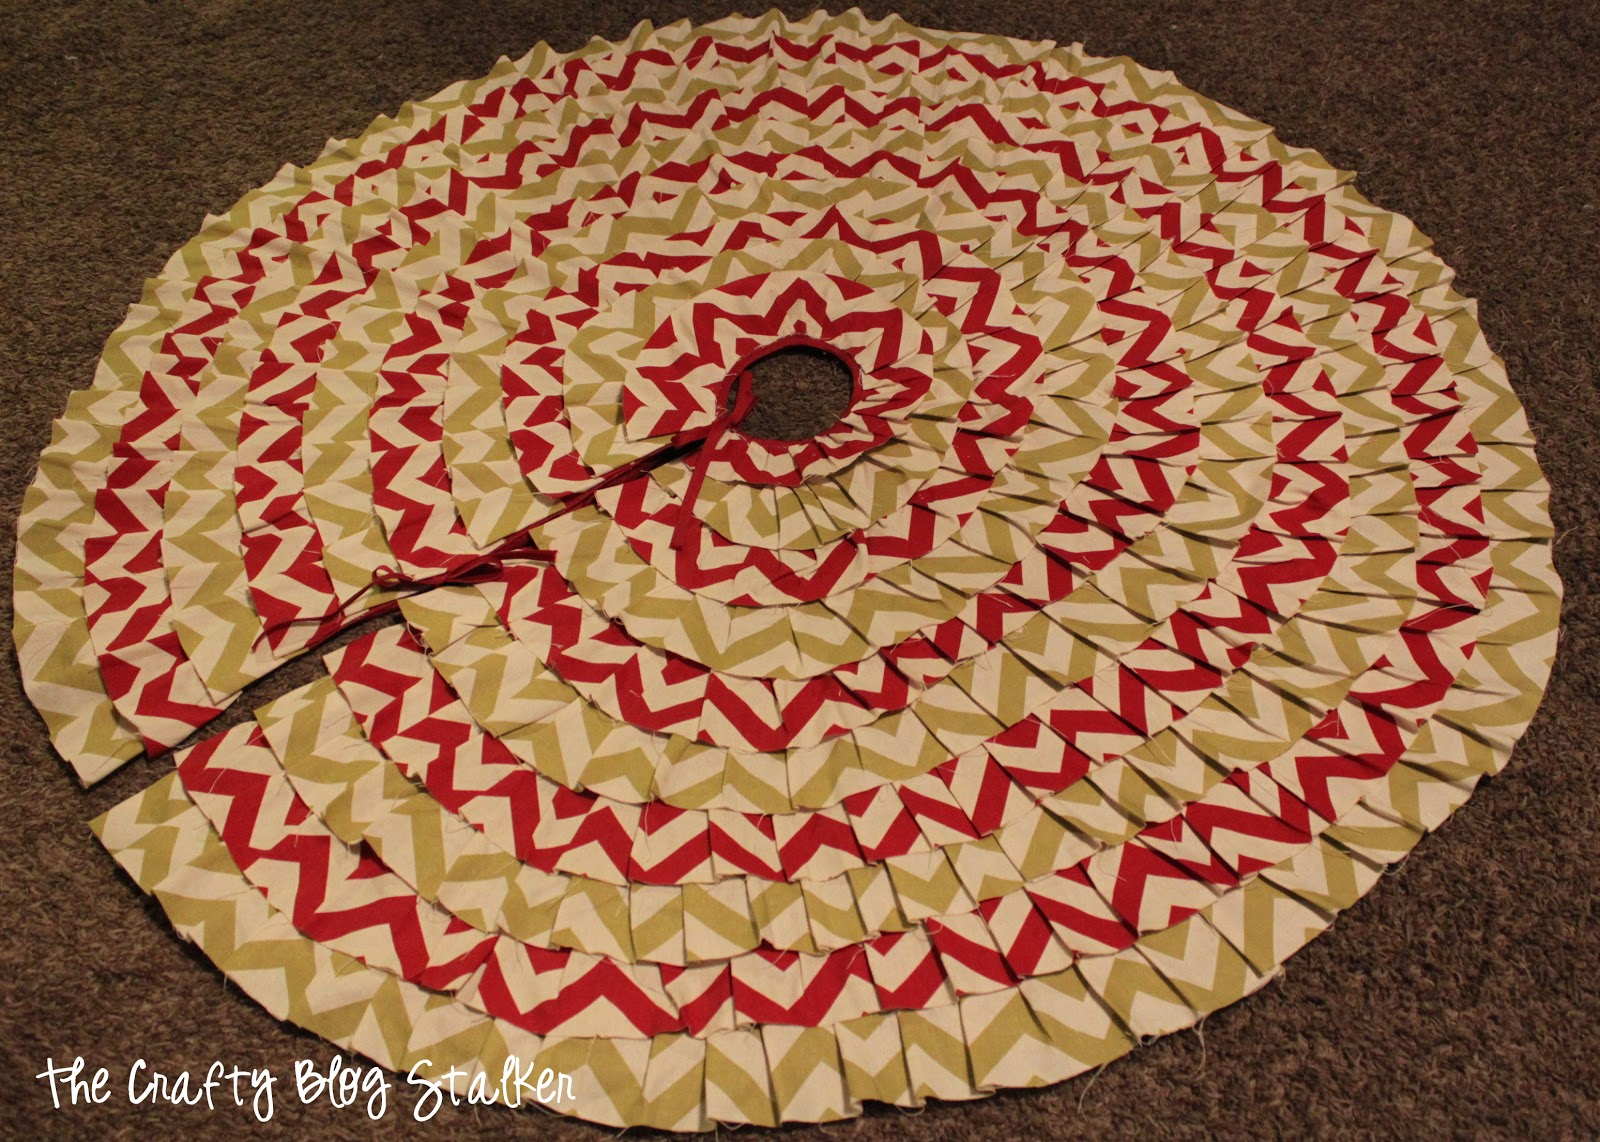 No Sew Ruffle Christmas Tree Skirt - The Crafty Blog Stalker